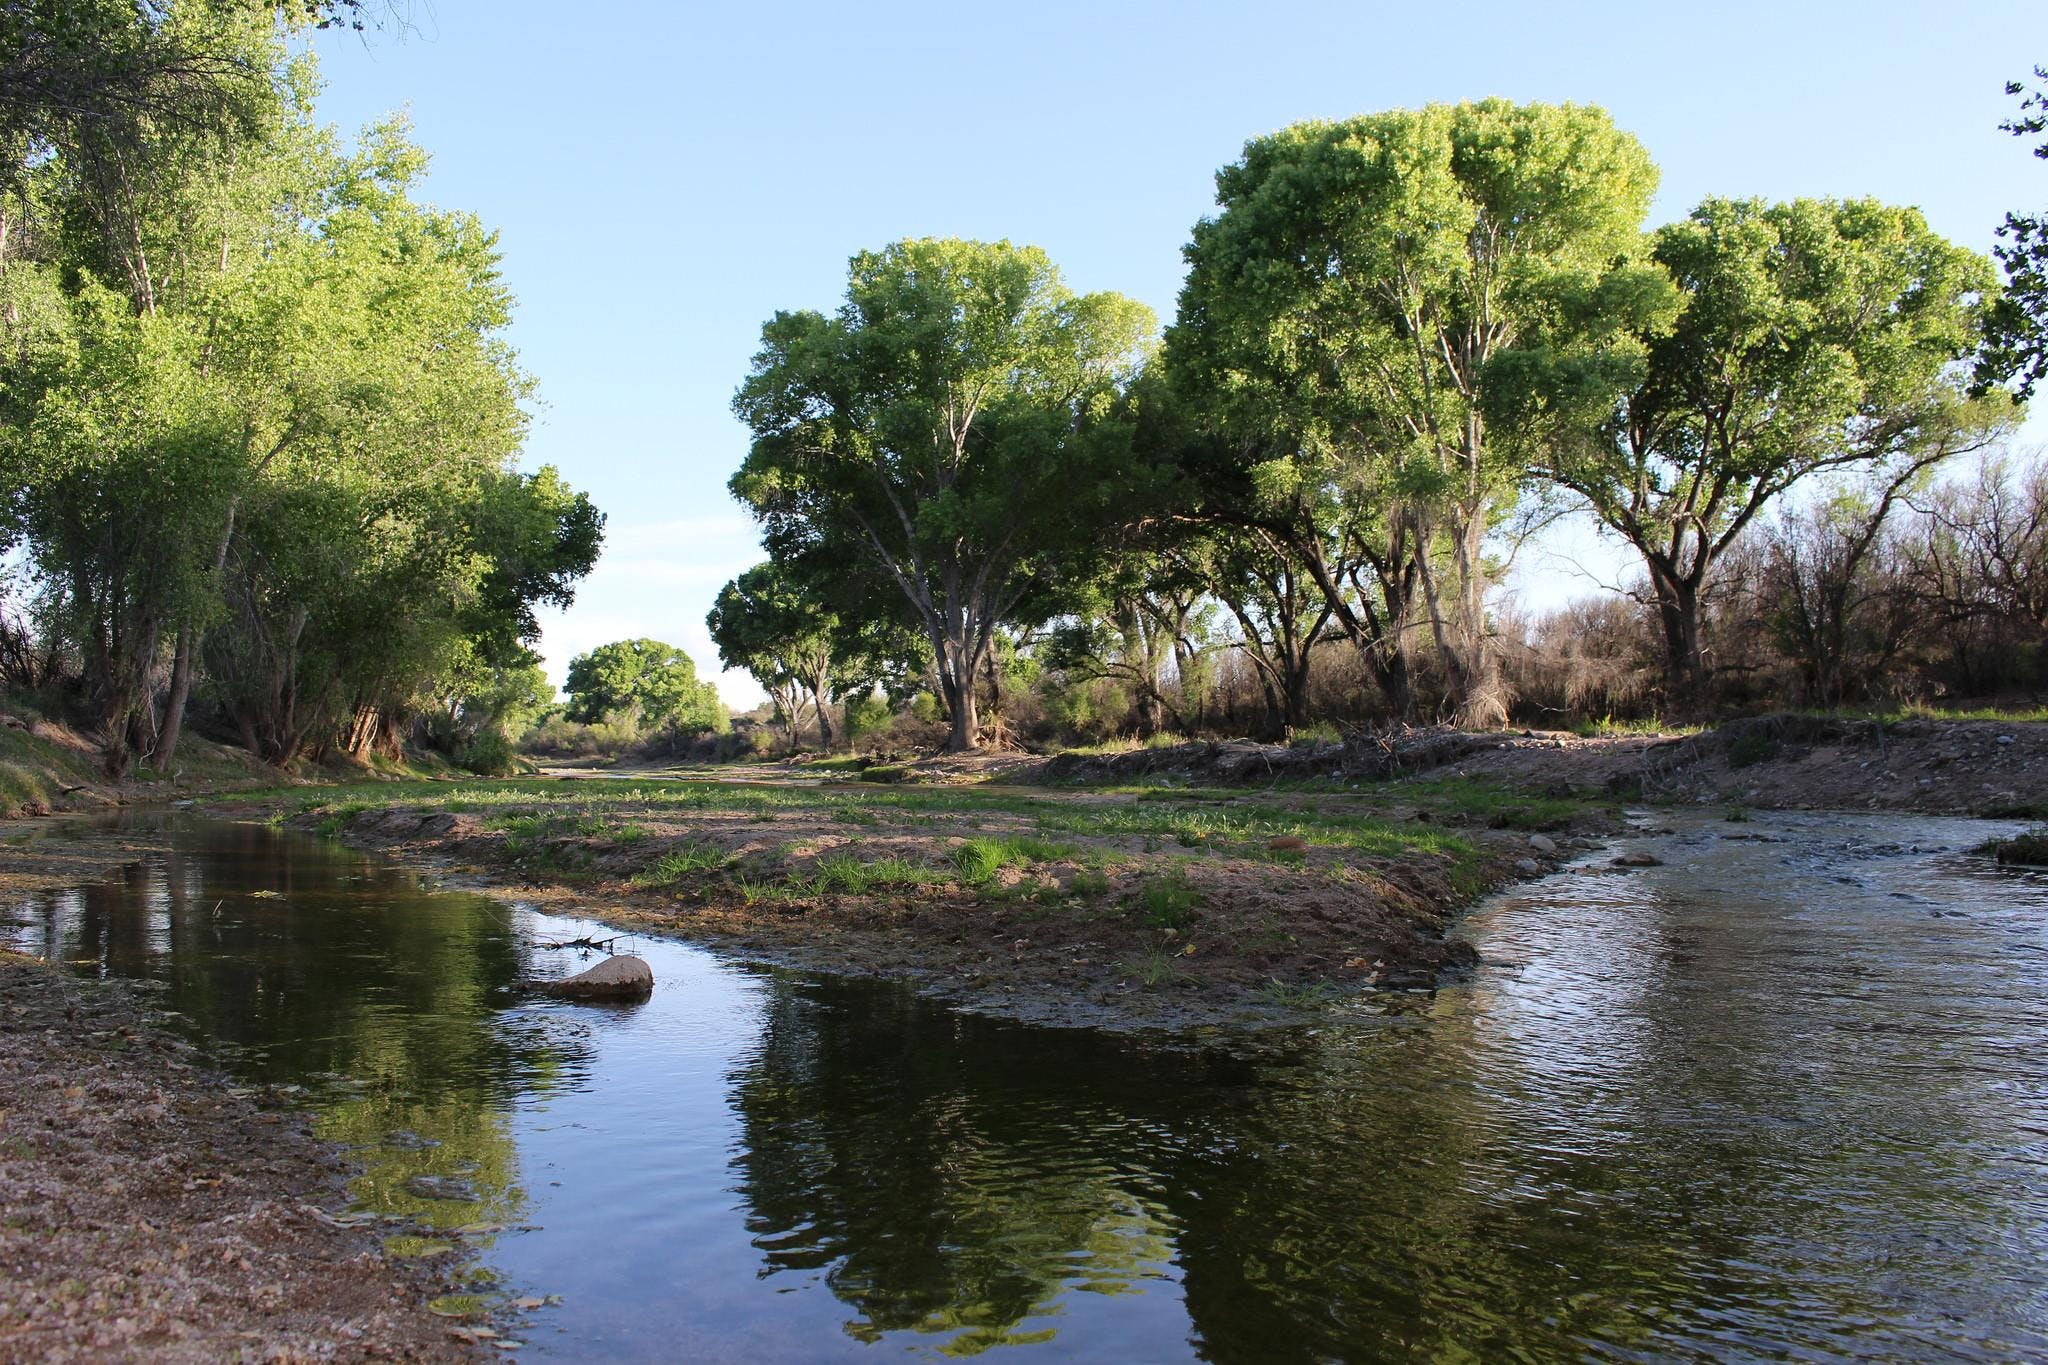 The Big Thirst: Will Arizona Run Out of Water?